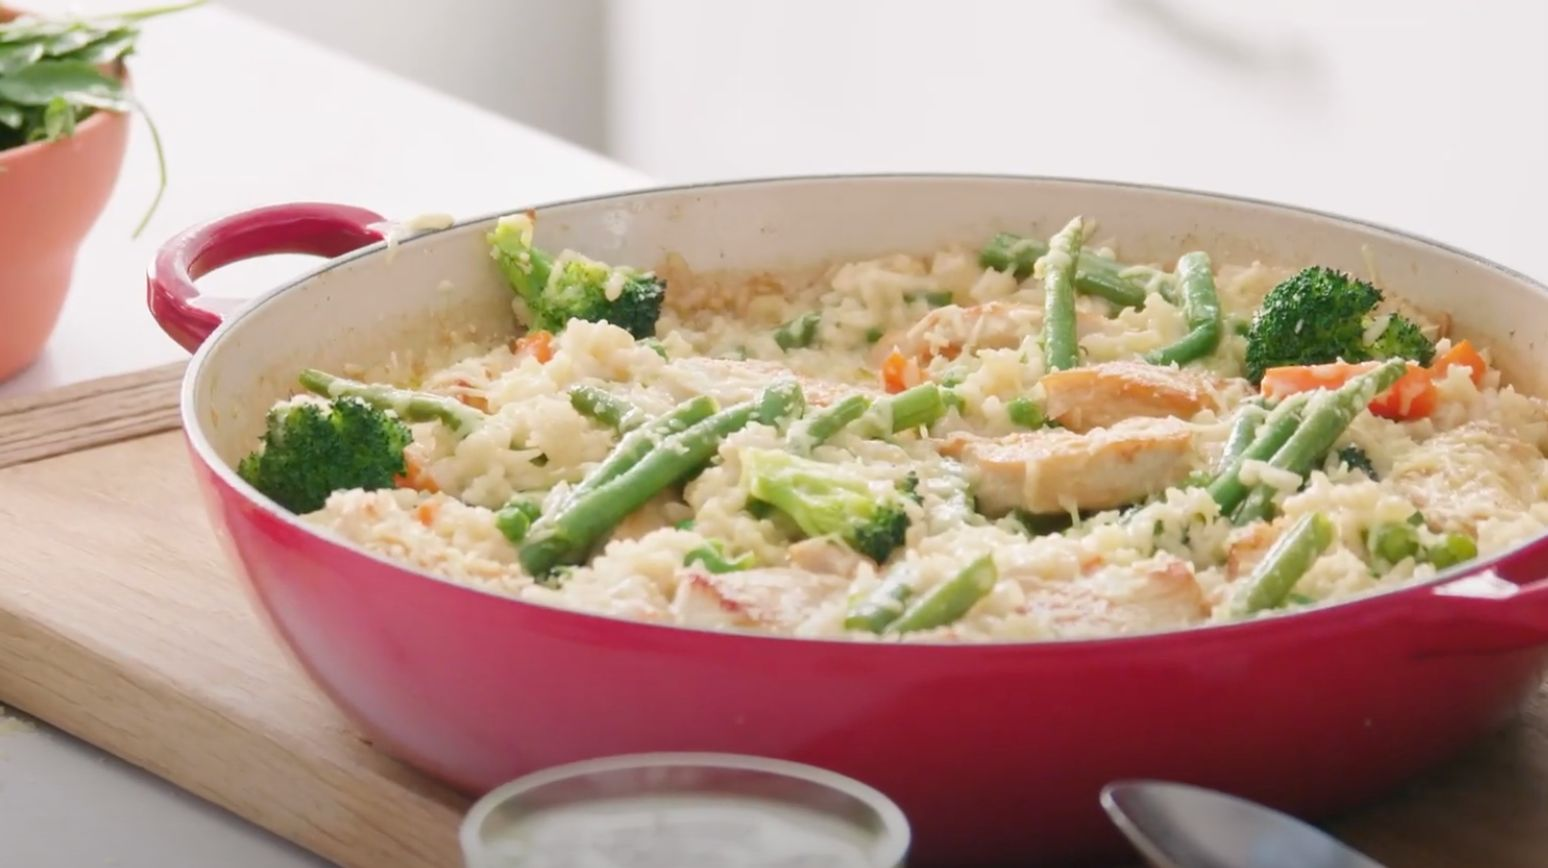 Baked Chicken and Cheese Risotto Recipe